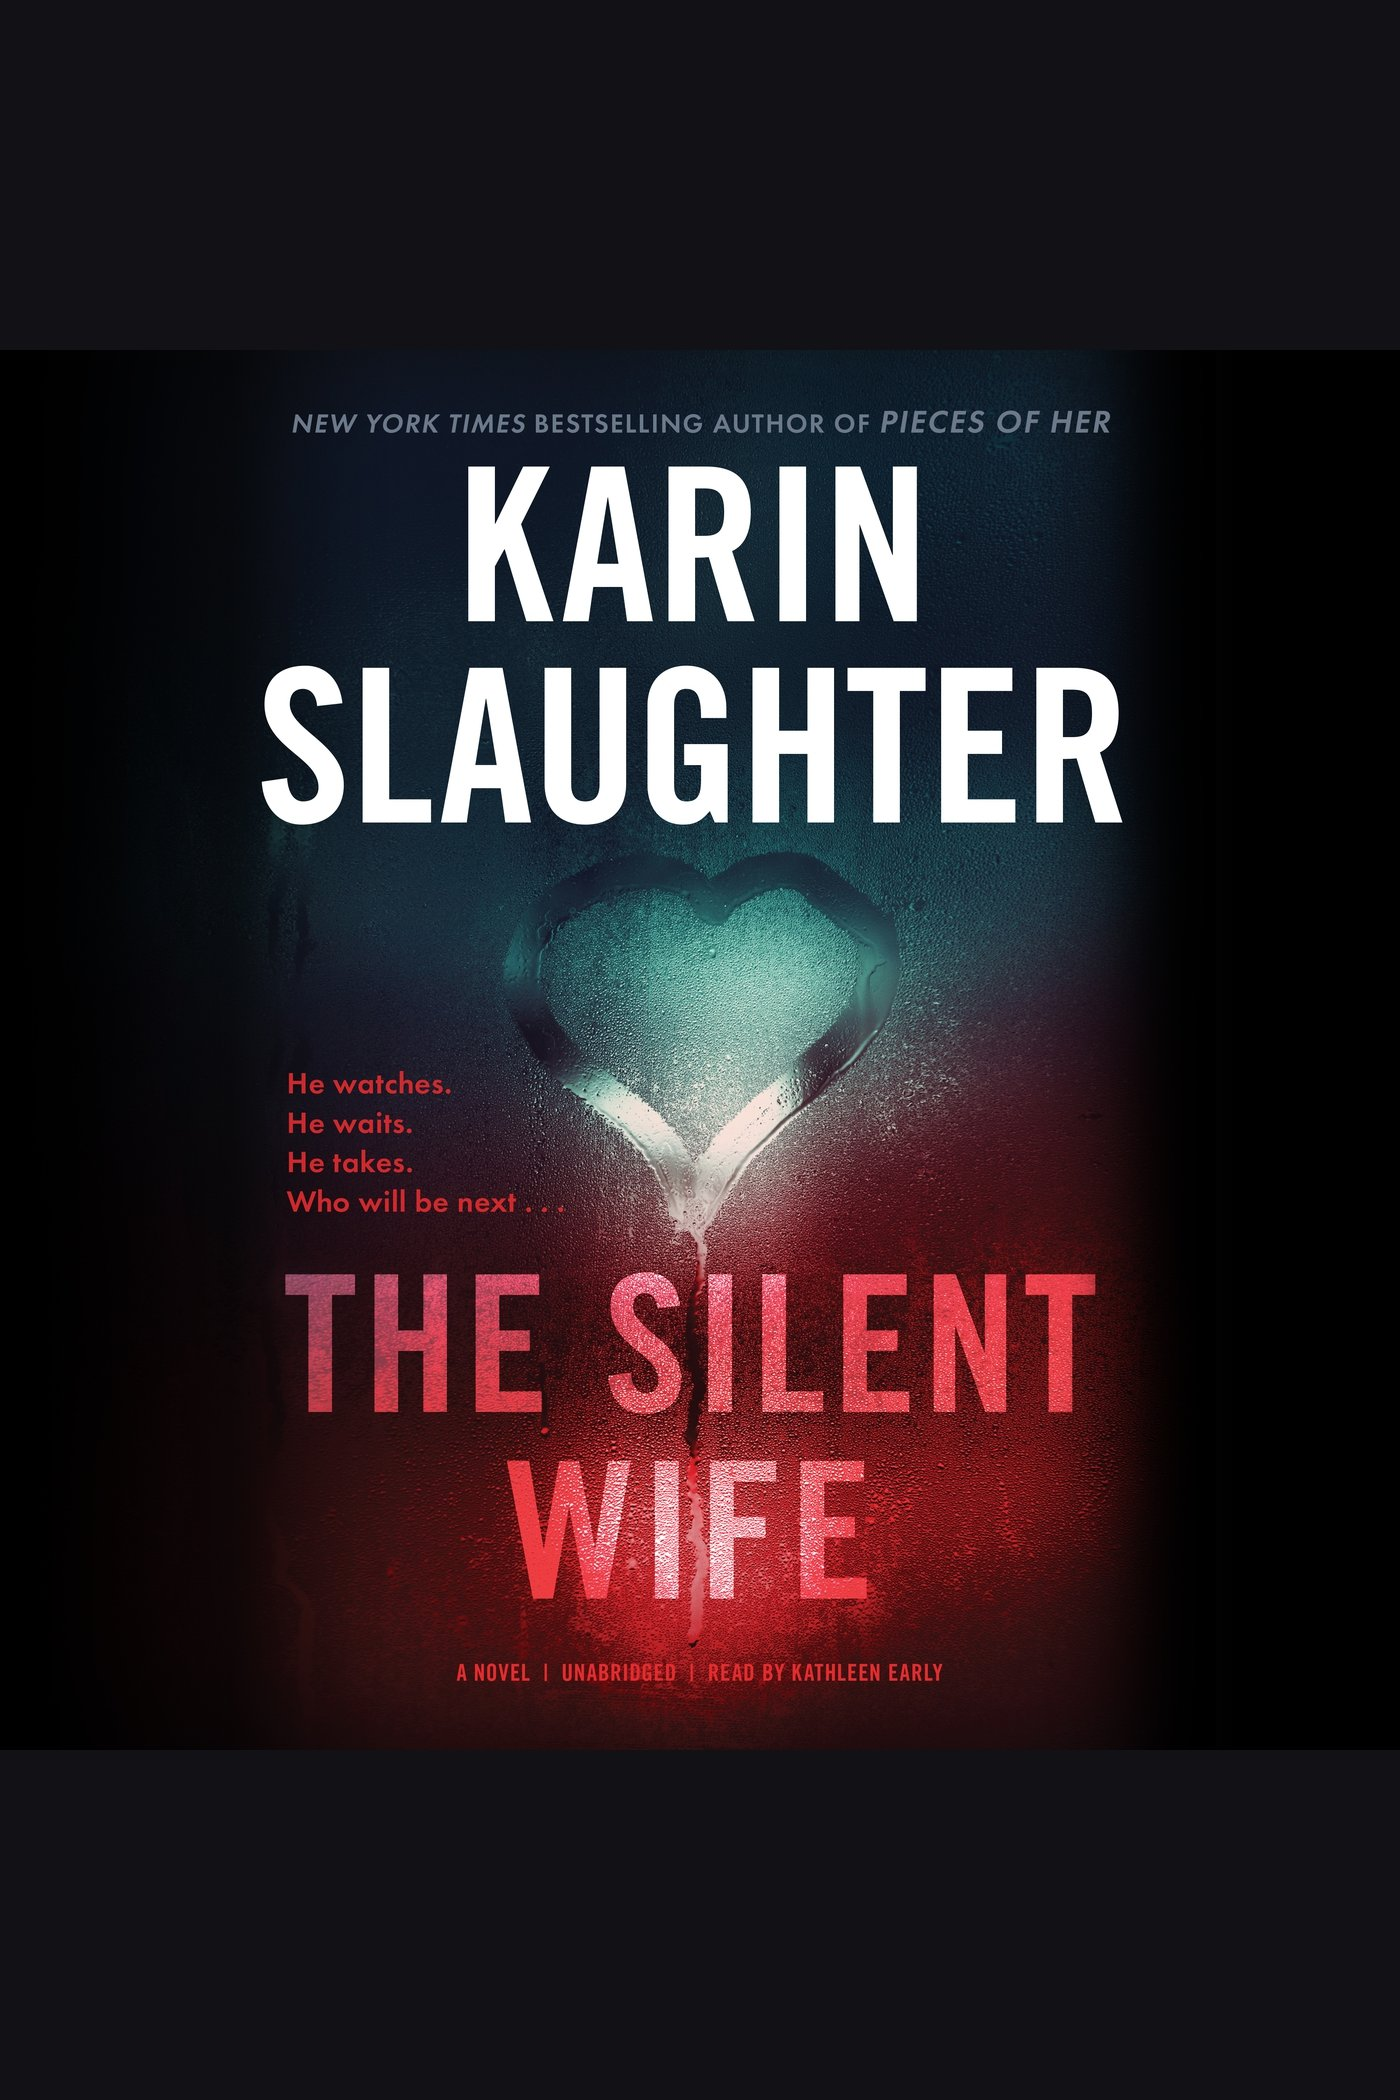 Cover Image of Silent Wife, The